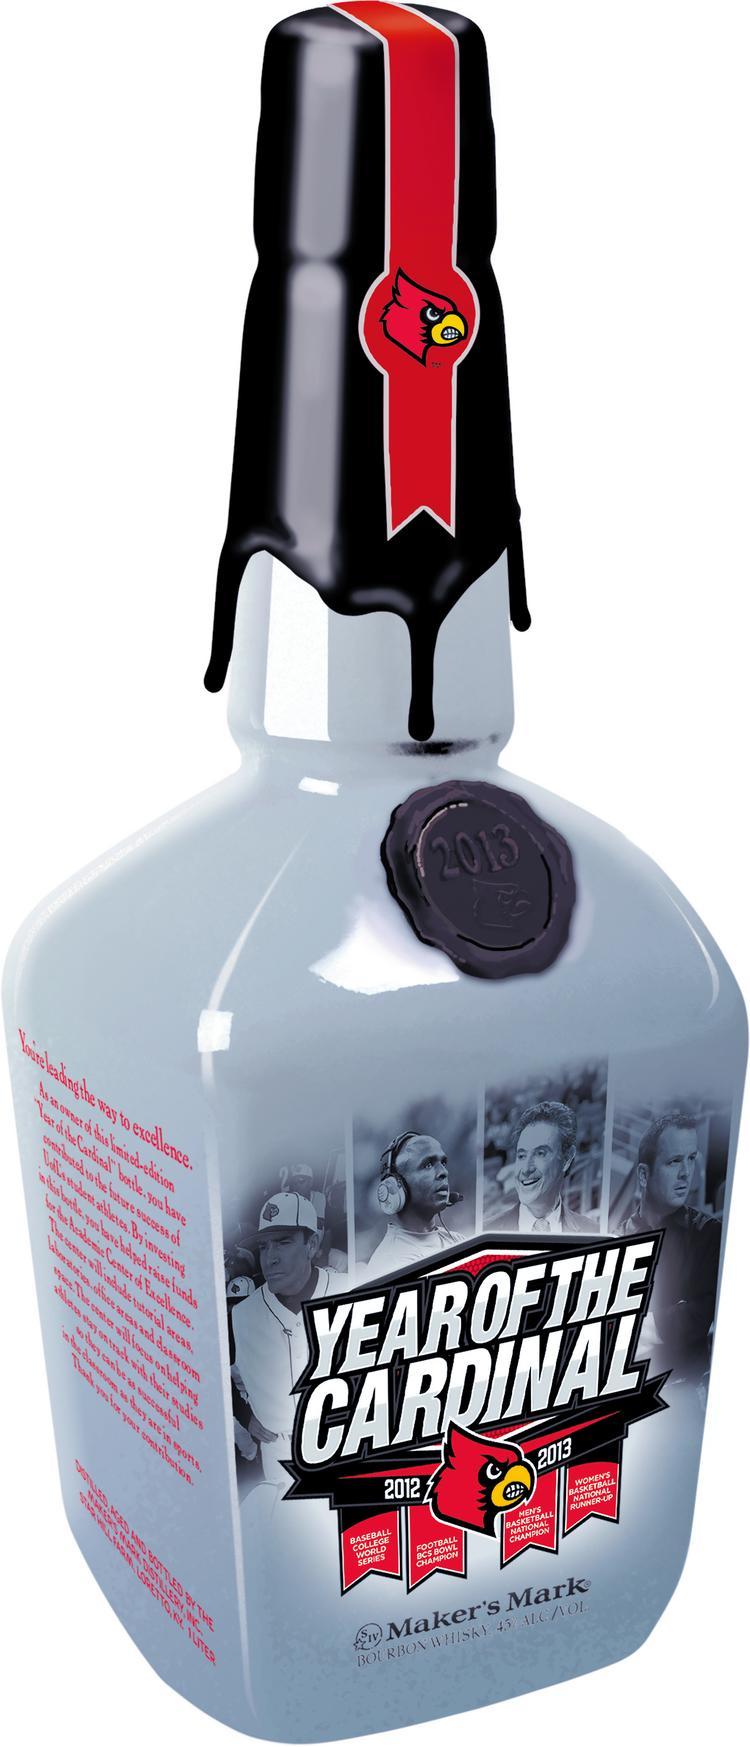 """Maker's Mark is donating 500 bottles celebrating the """"Year of the Cardinal,"""" which has included a Sugar Bowl victory in football, a College World Series appearance by the baseball team, a men's basketball national championship and a women's basketball national runner-up performance."""